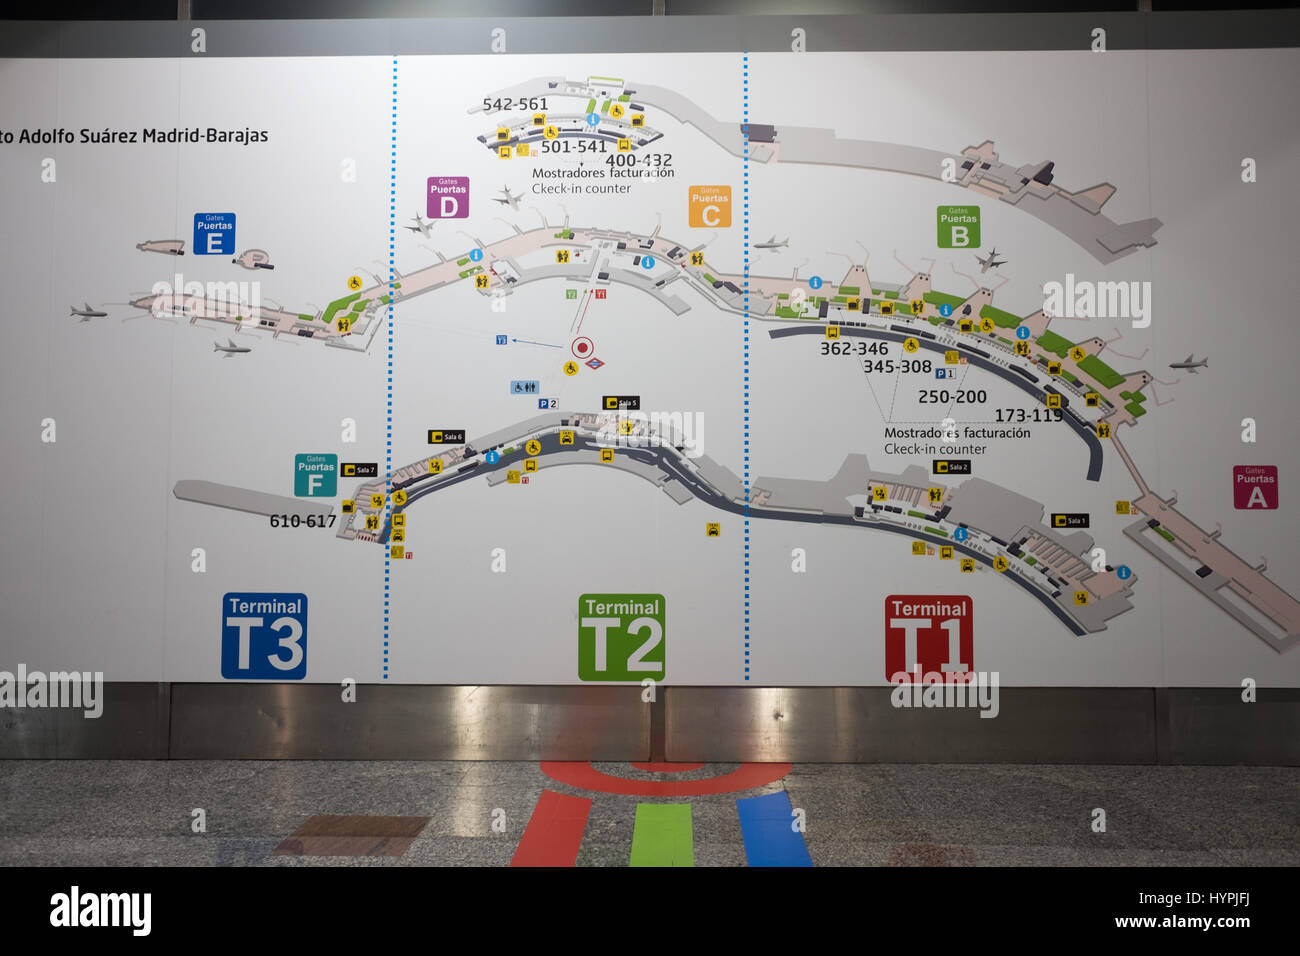 map of madrid airport showing terminal directions - Stock Image